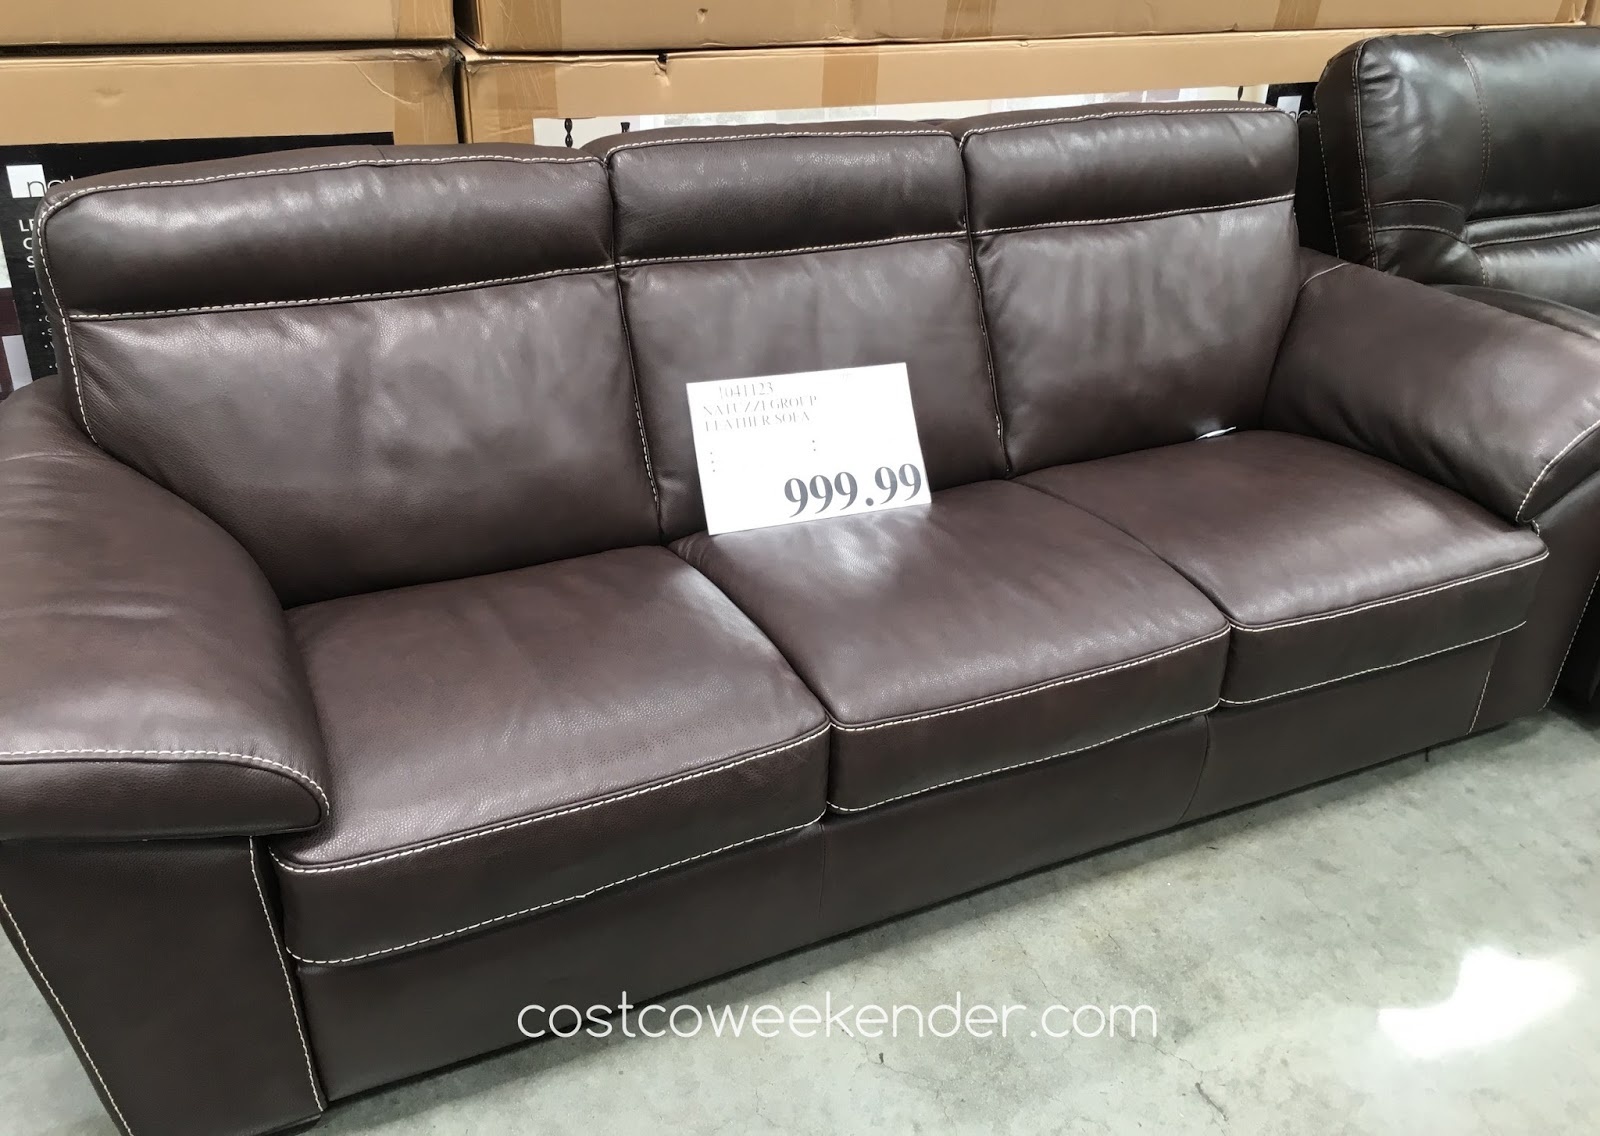 Marvelous 25 Elegant Natuzzi Leather Sofa Costco Andrewgaddart Wooden Chair Designs For Living Room Andrewgaddartcom